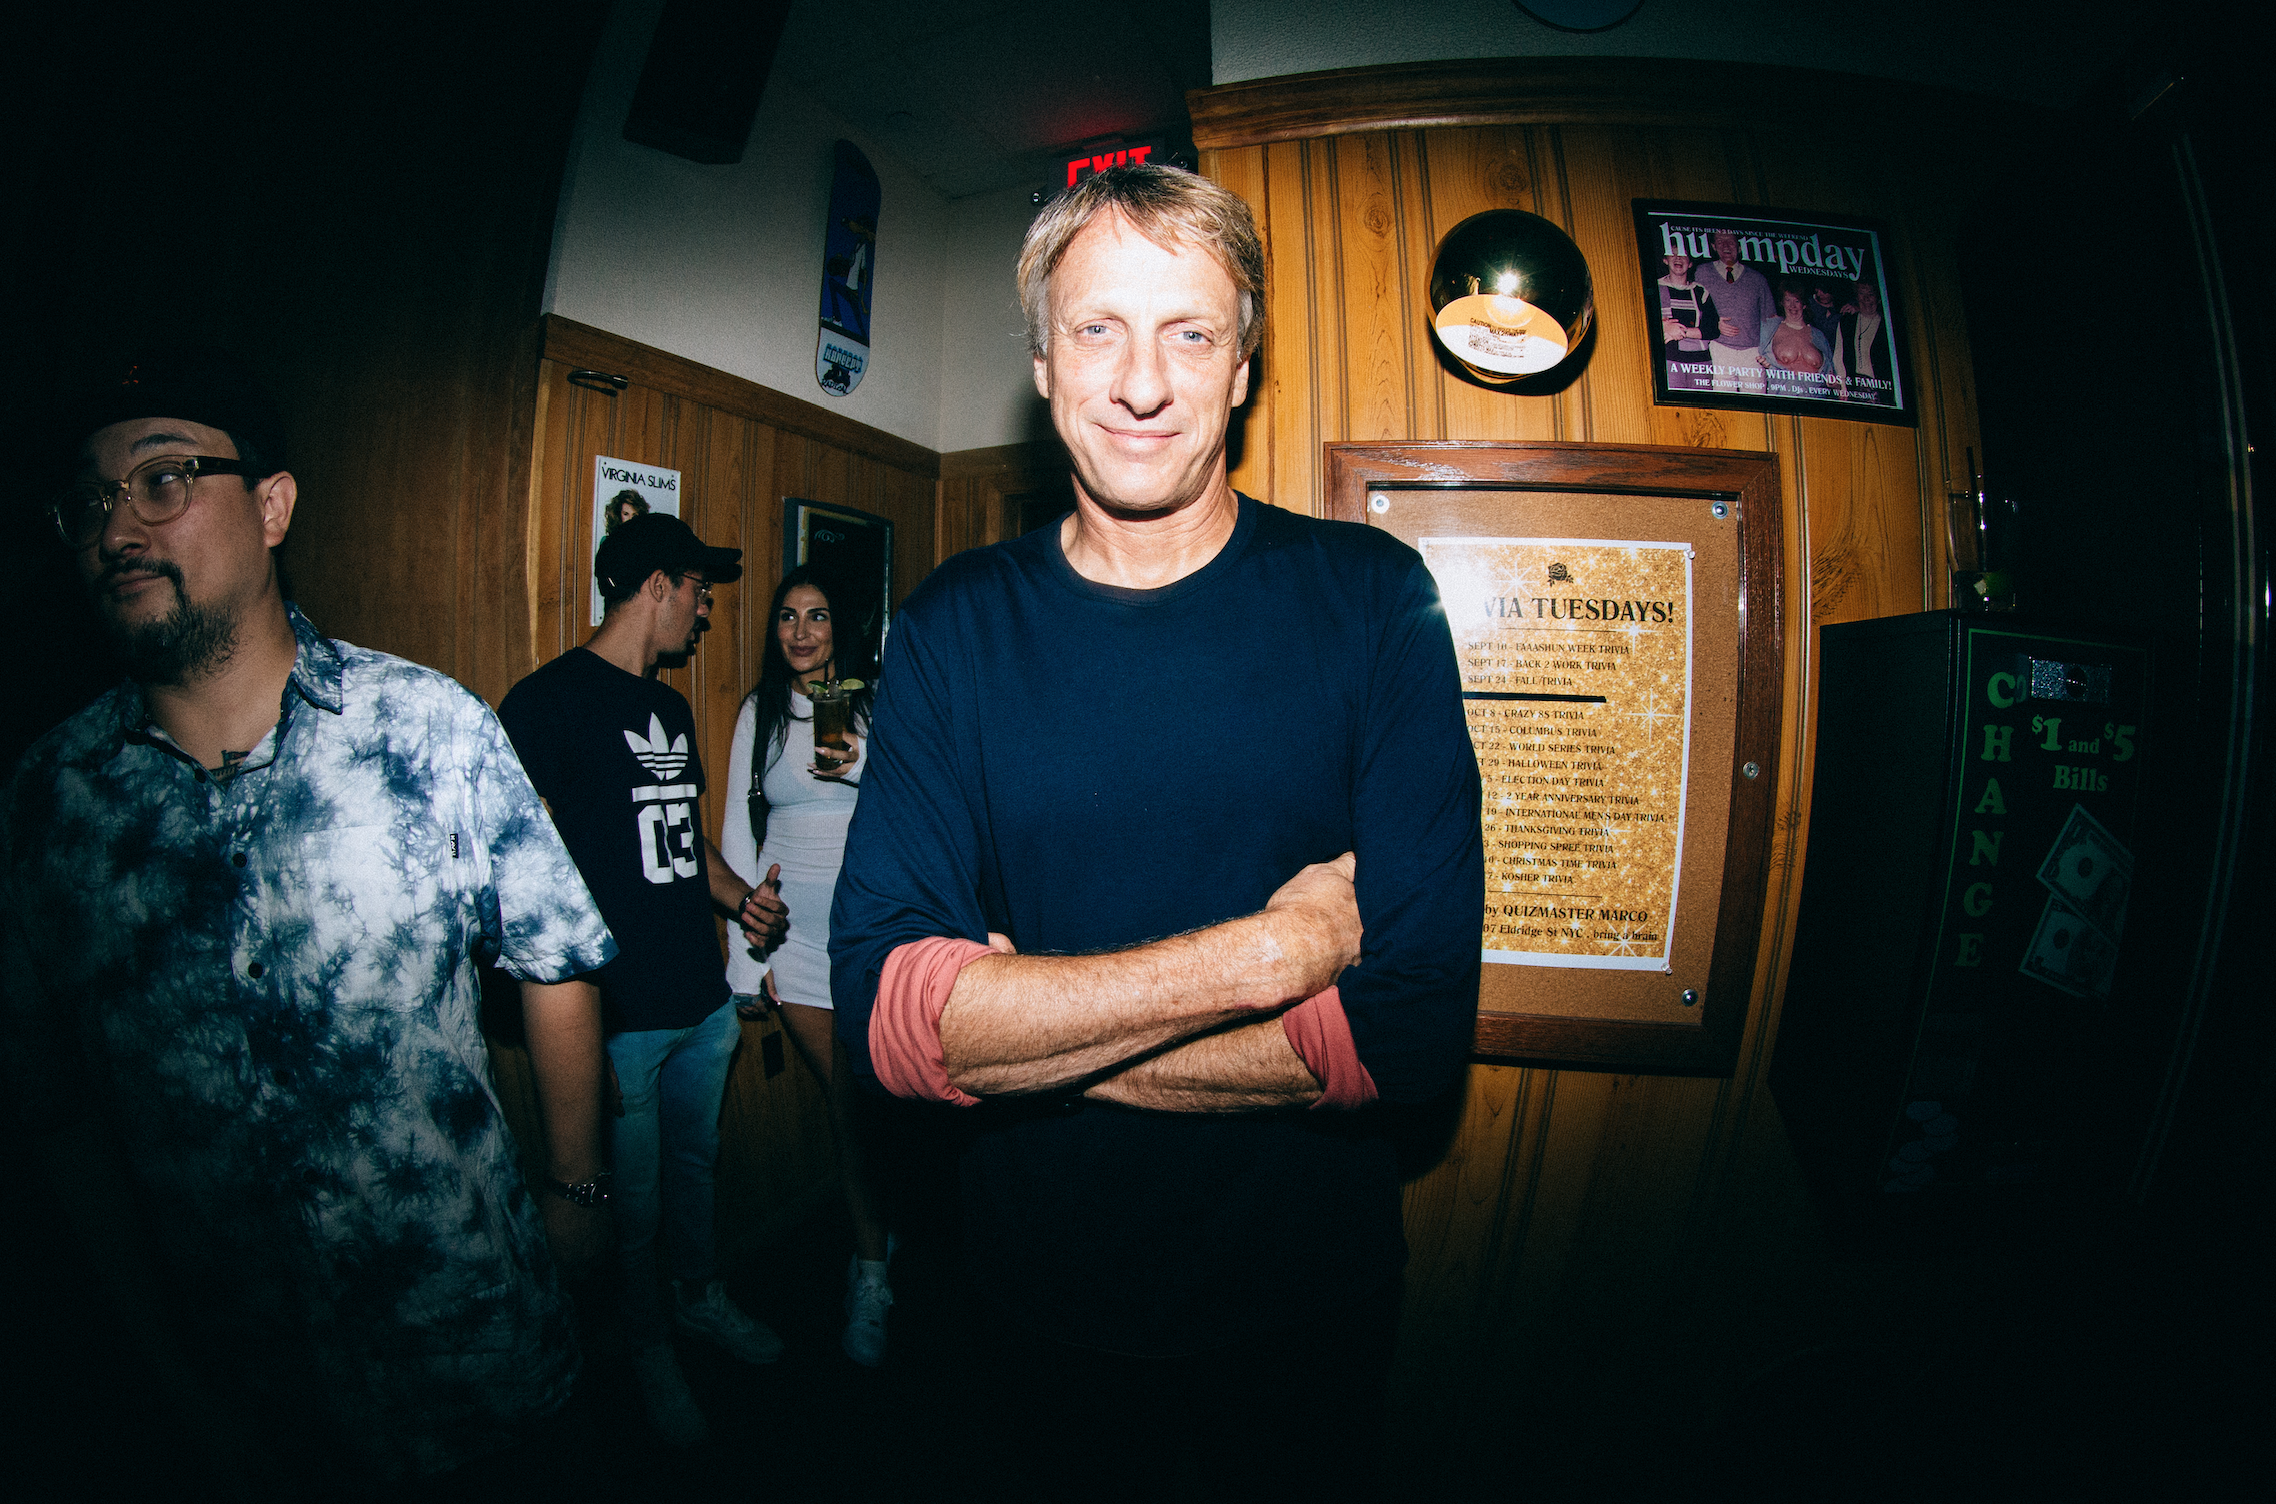 I mean…it's Tony Hawk